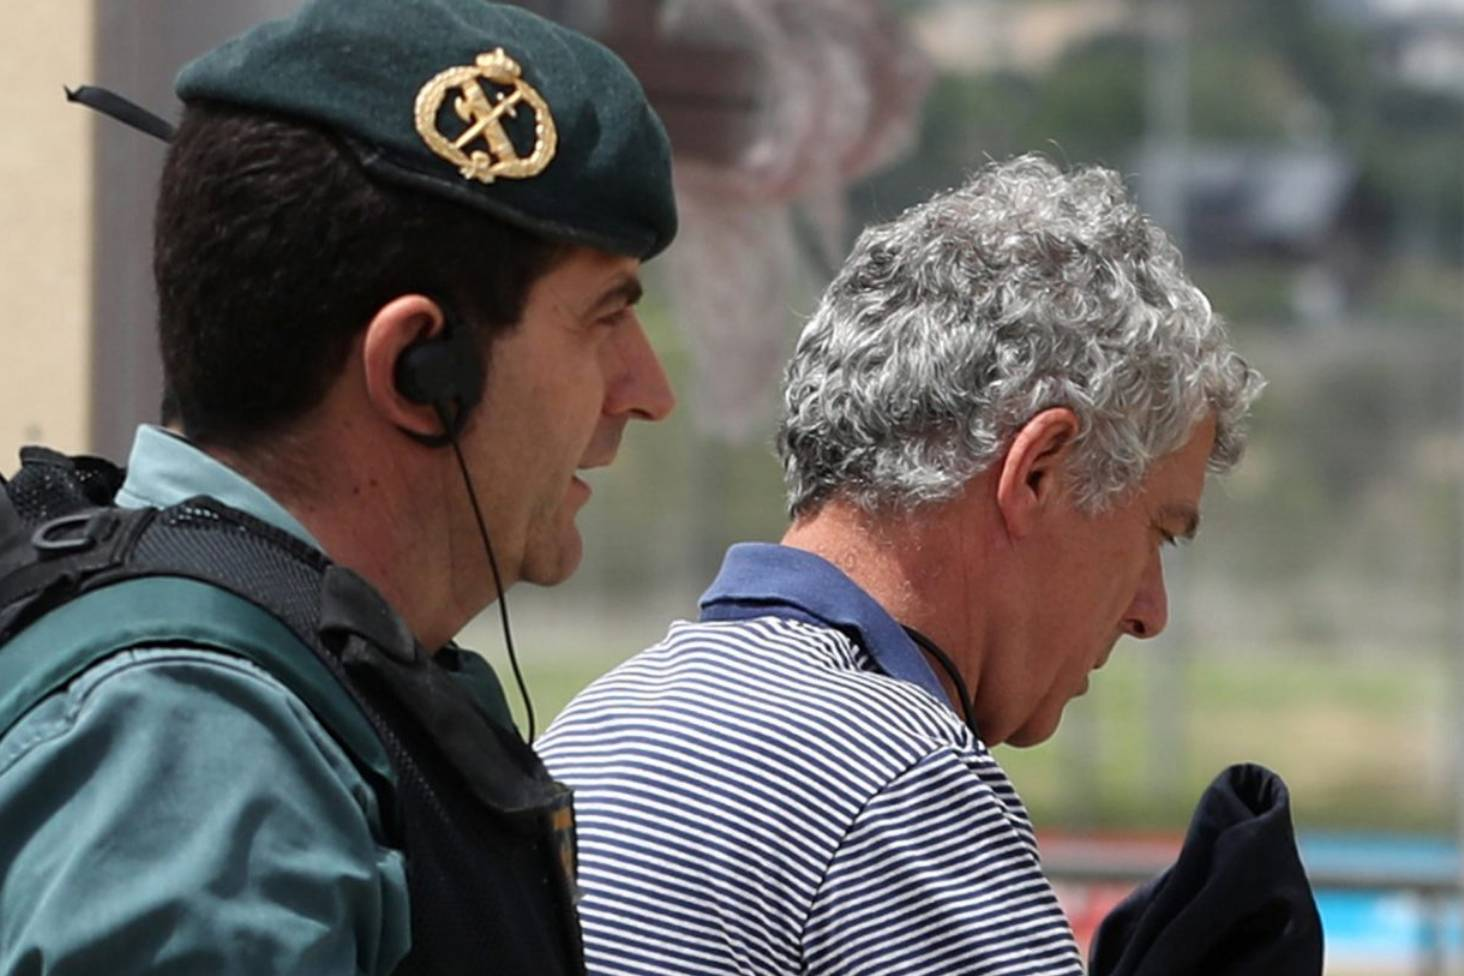 President and several football players of the first and second divisions of Spanish football were arrested for allegedly being part of a criminal organization